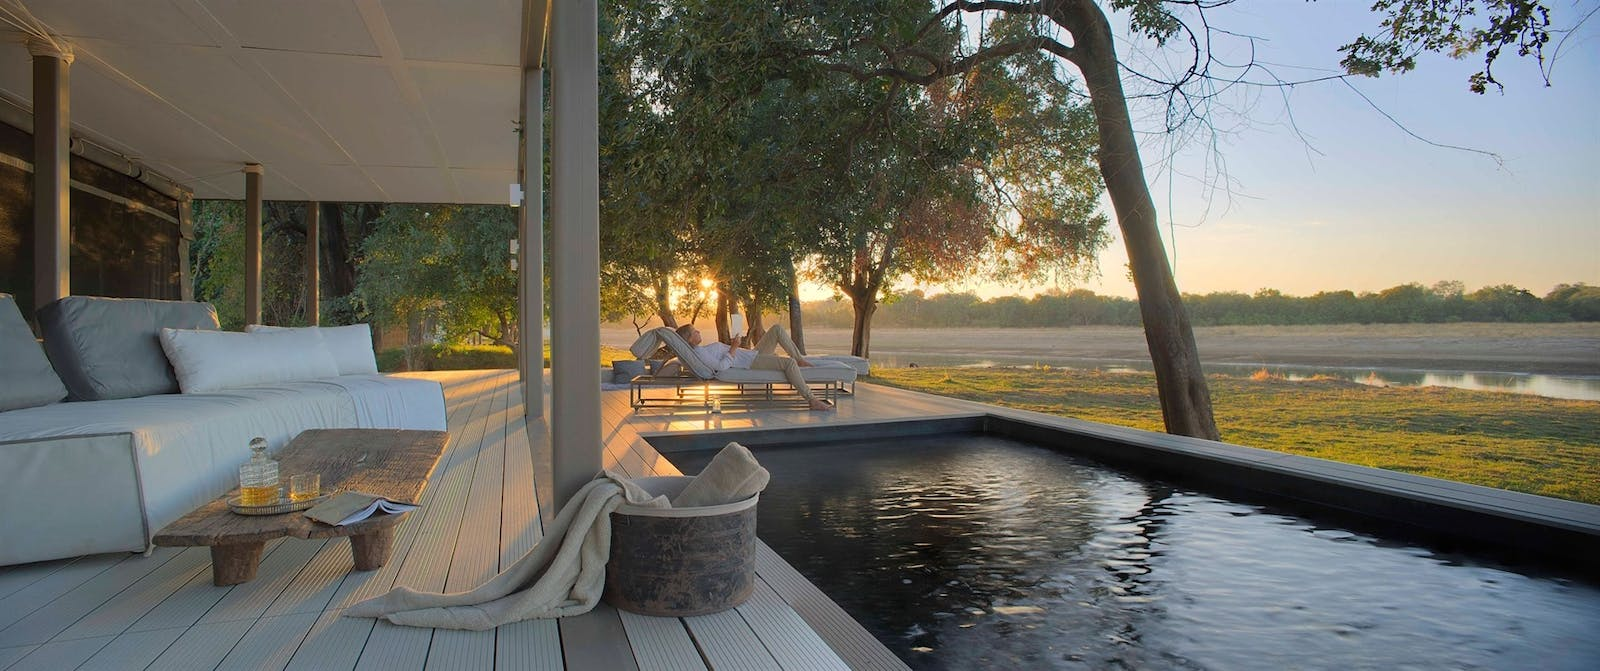 One=bedroom Villa Pool at Time + Tide Chinzombo, South Luangwa Safari, Zambia, Africa